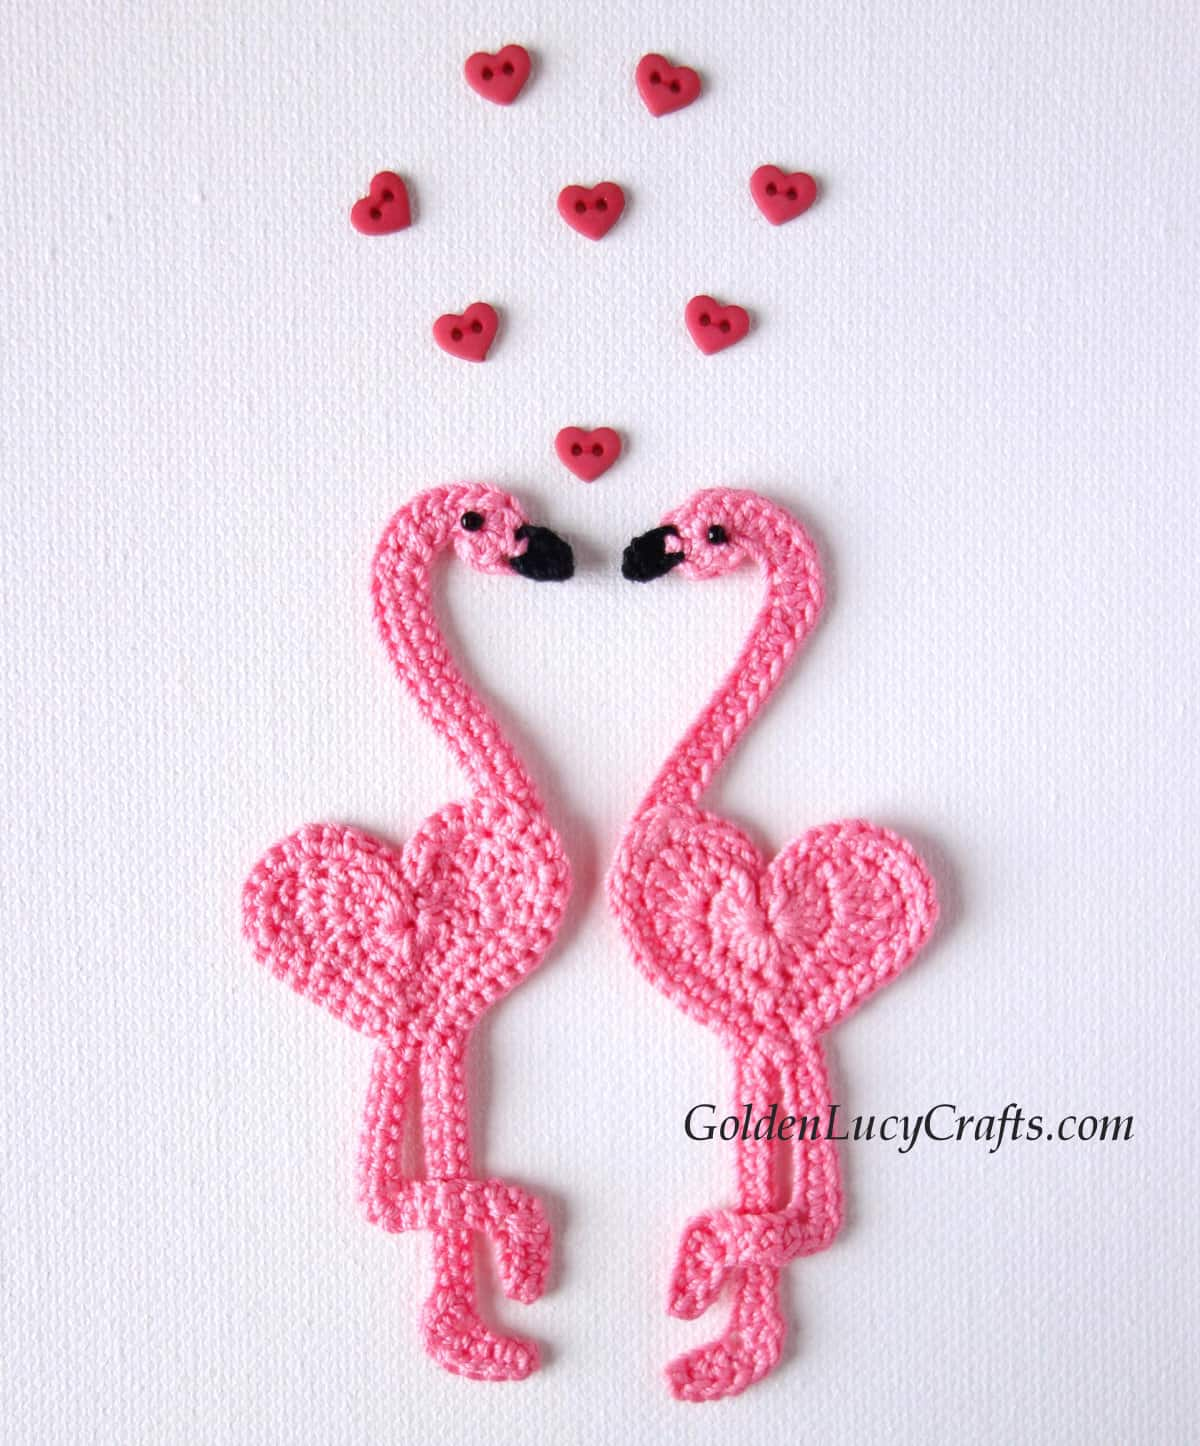 Flamingo love, two crocheted pink flamingo applique.